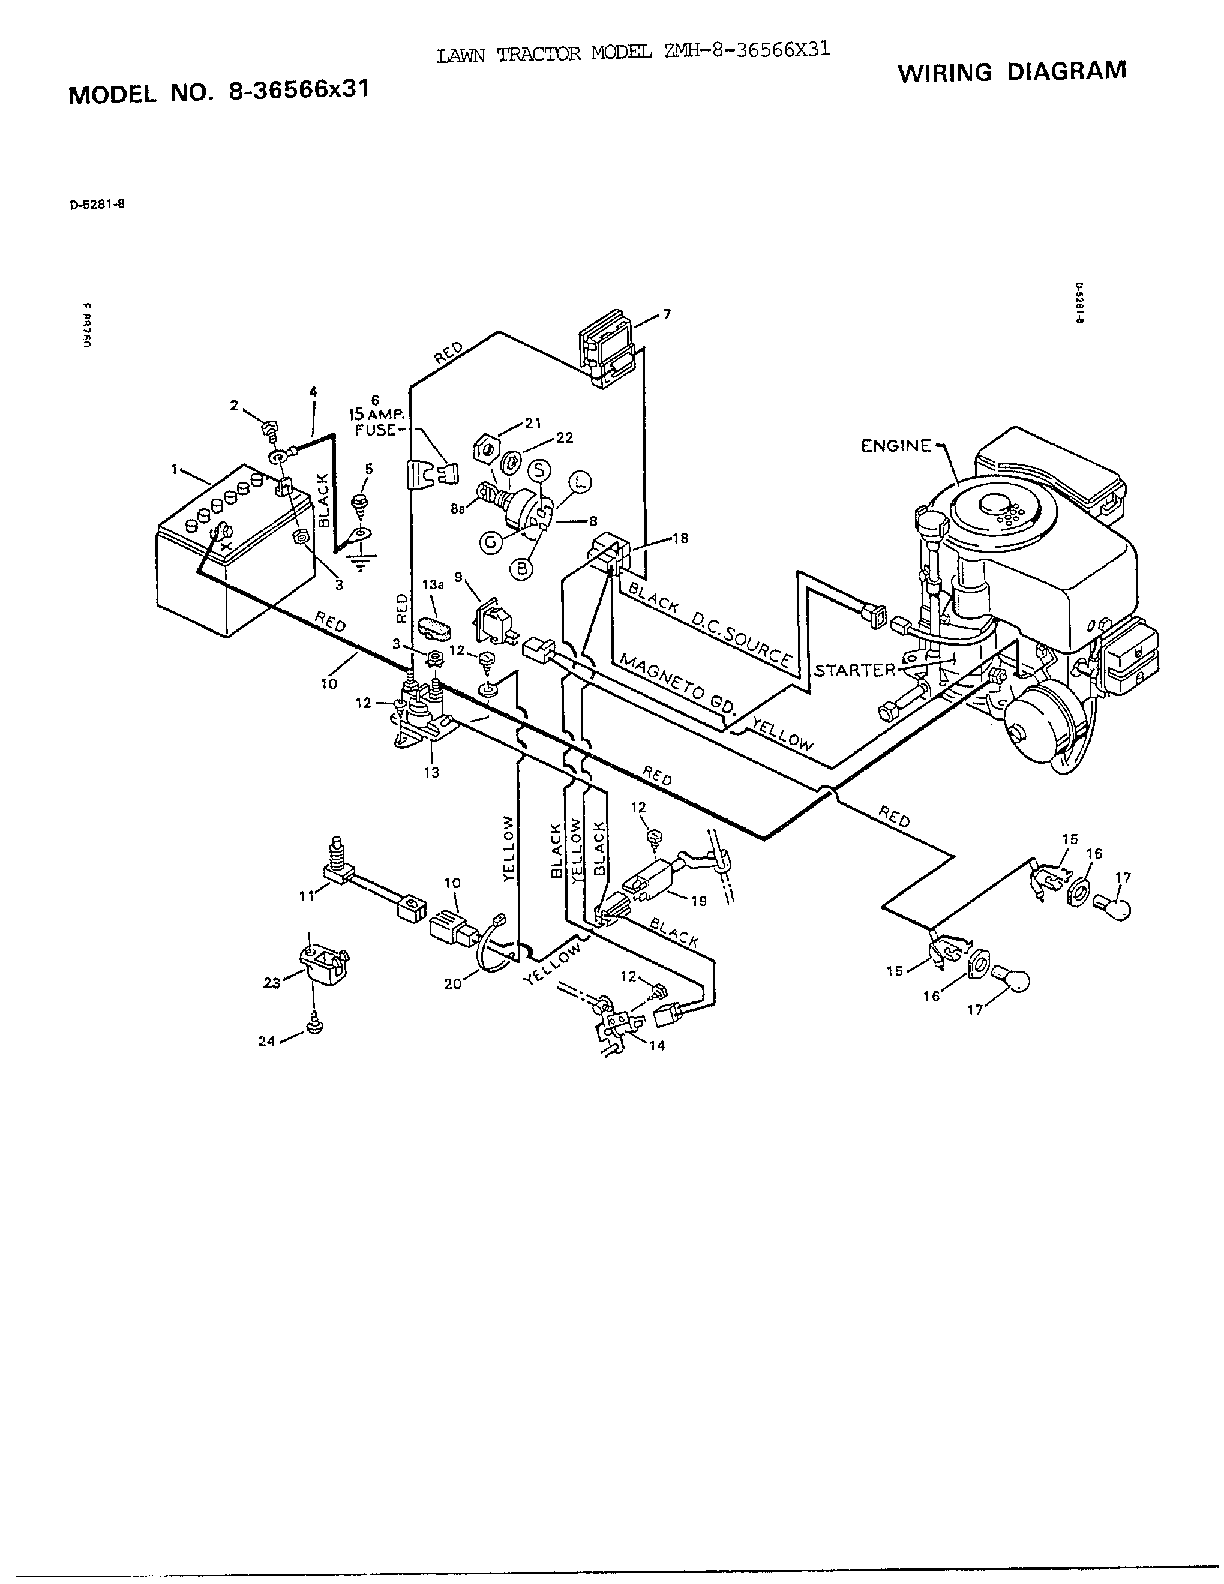 WIRING DIAGRAM Diagram & Parts List for Model 836566x31